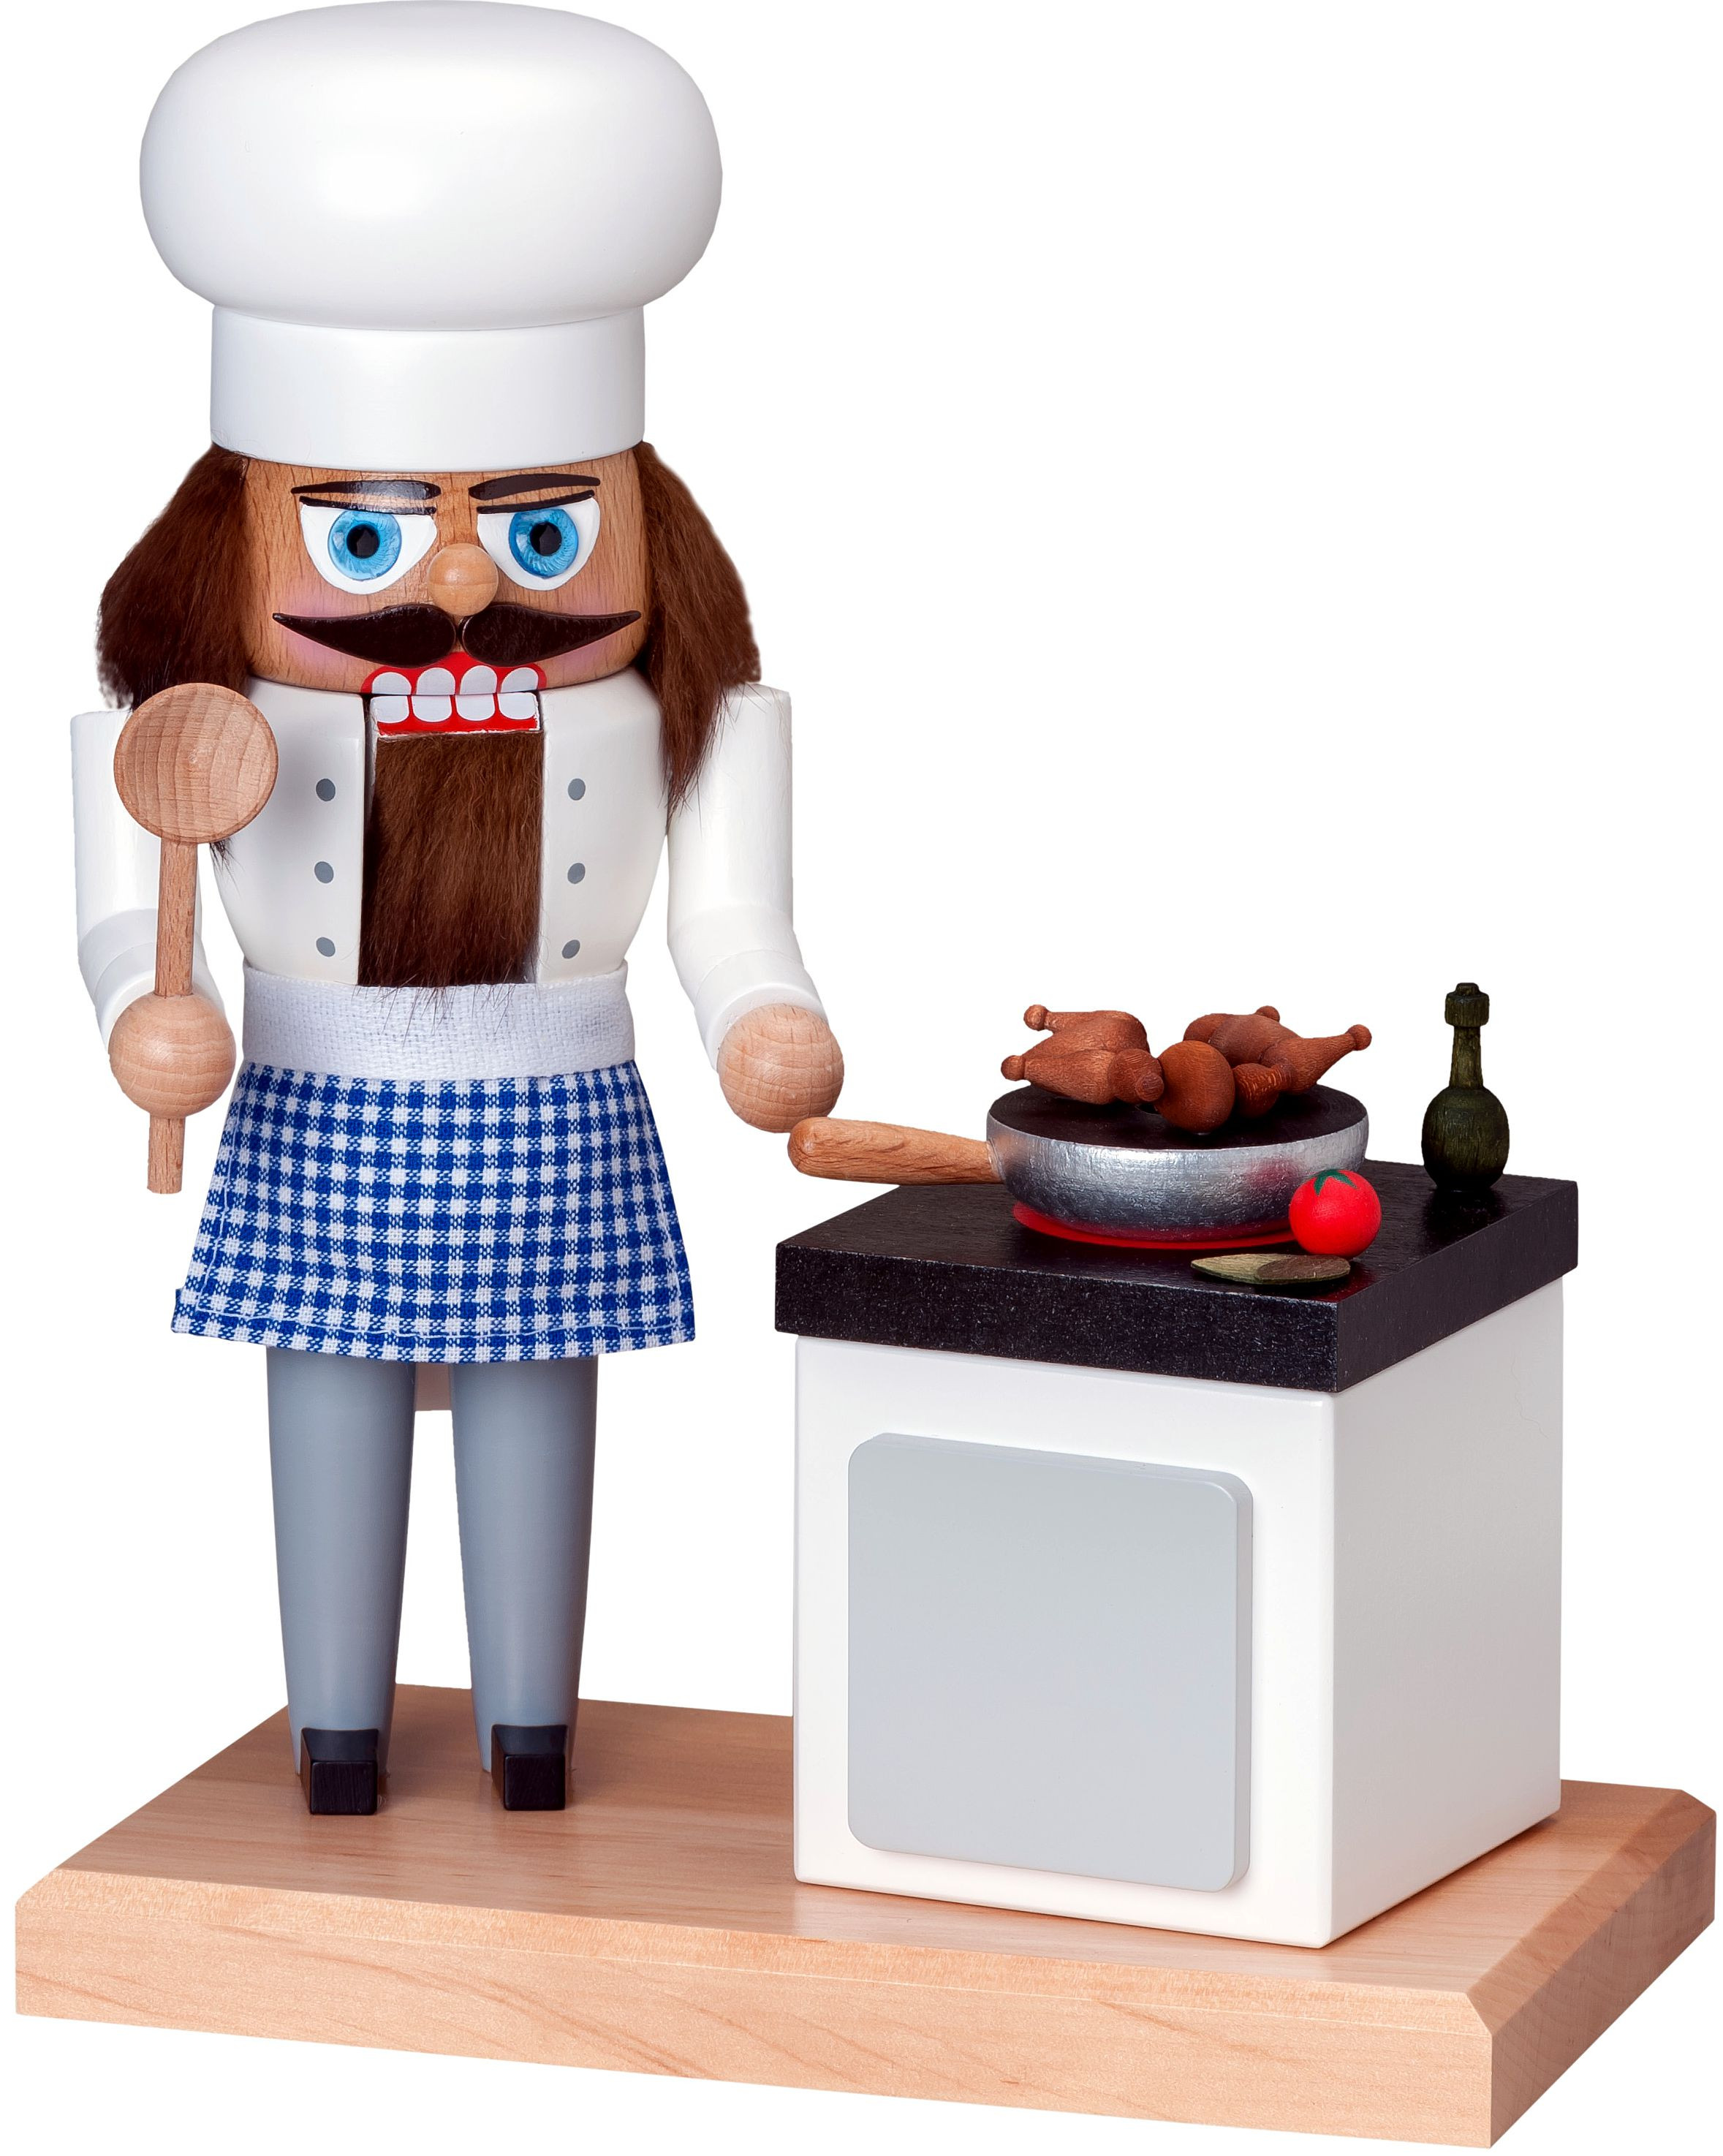 Nutcracker cook with stove